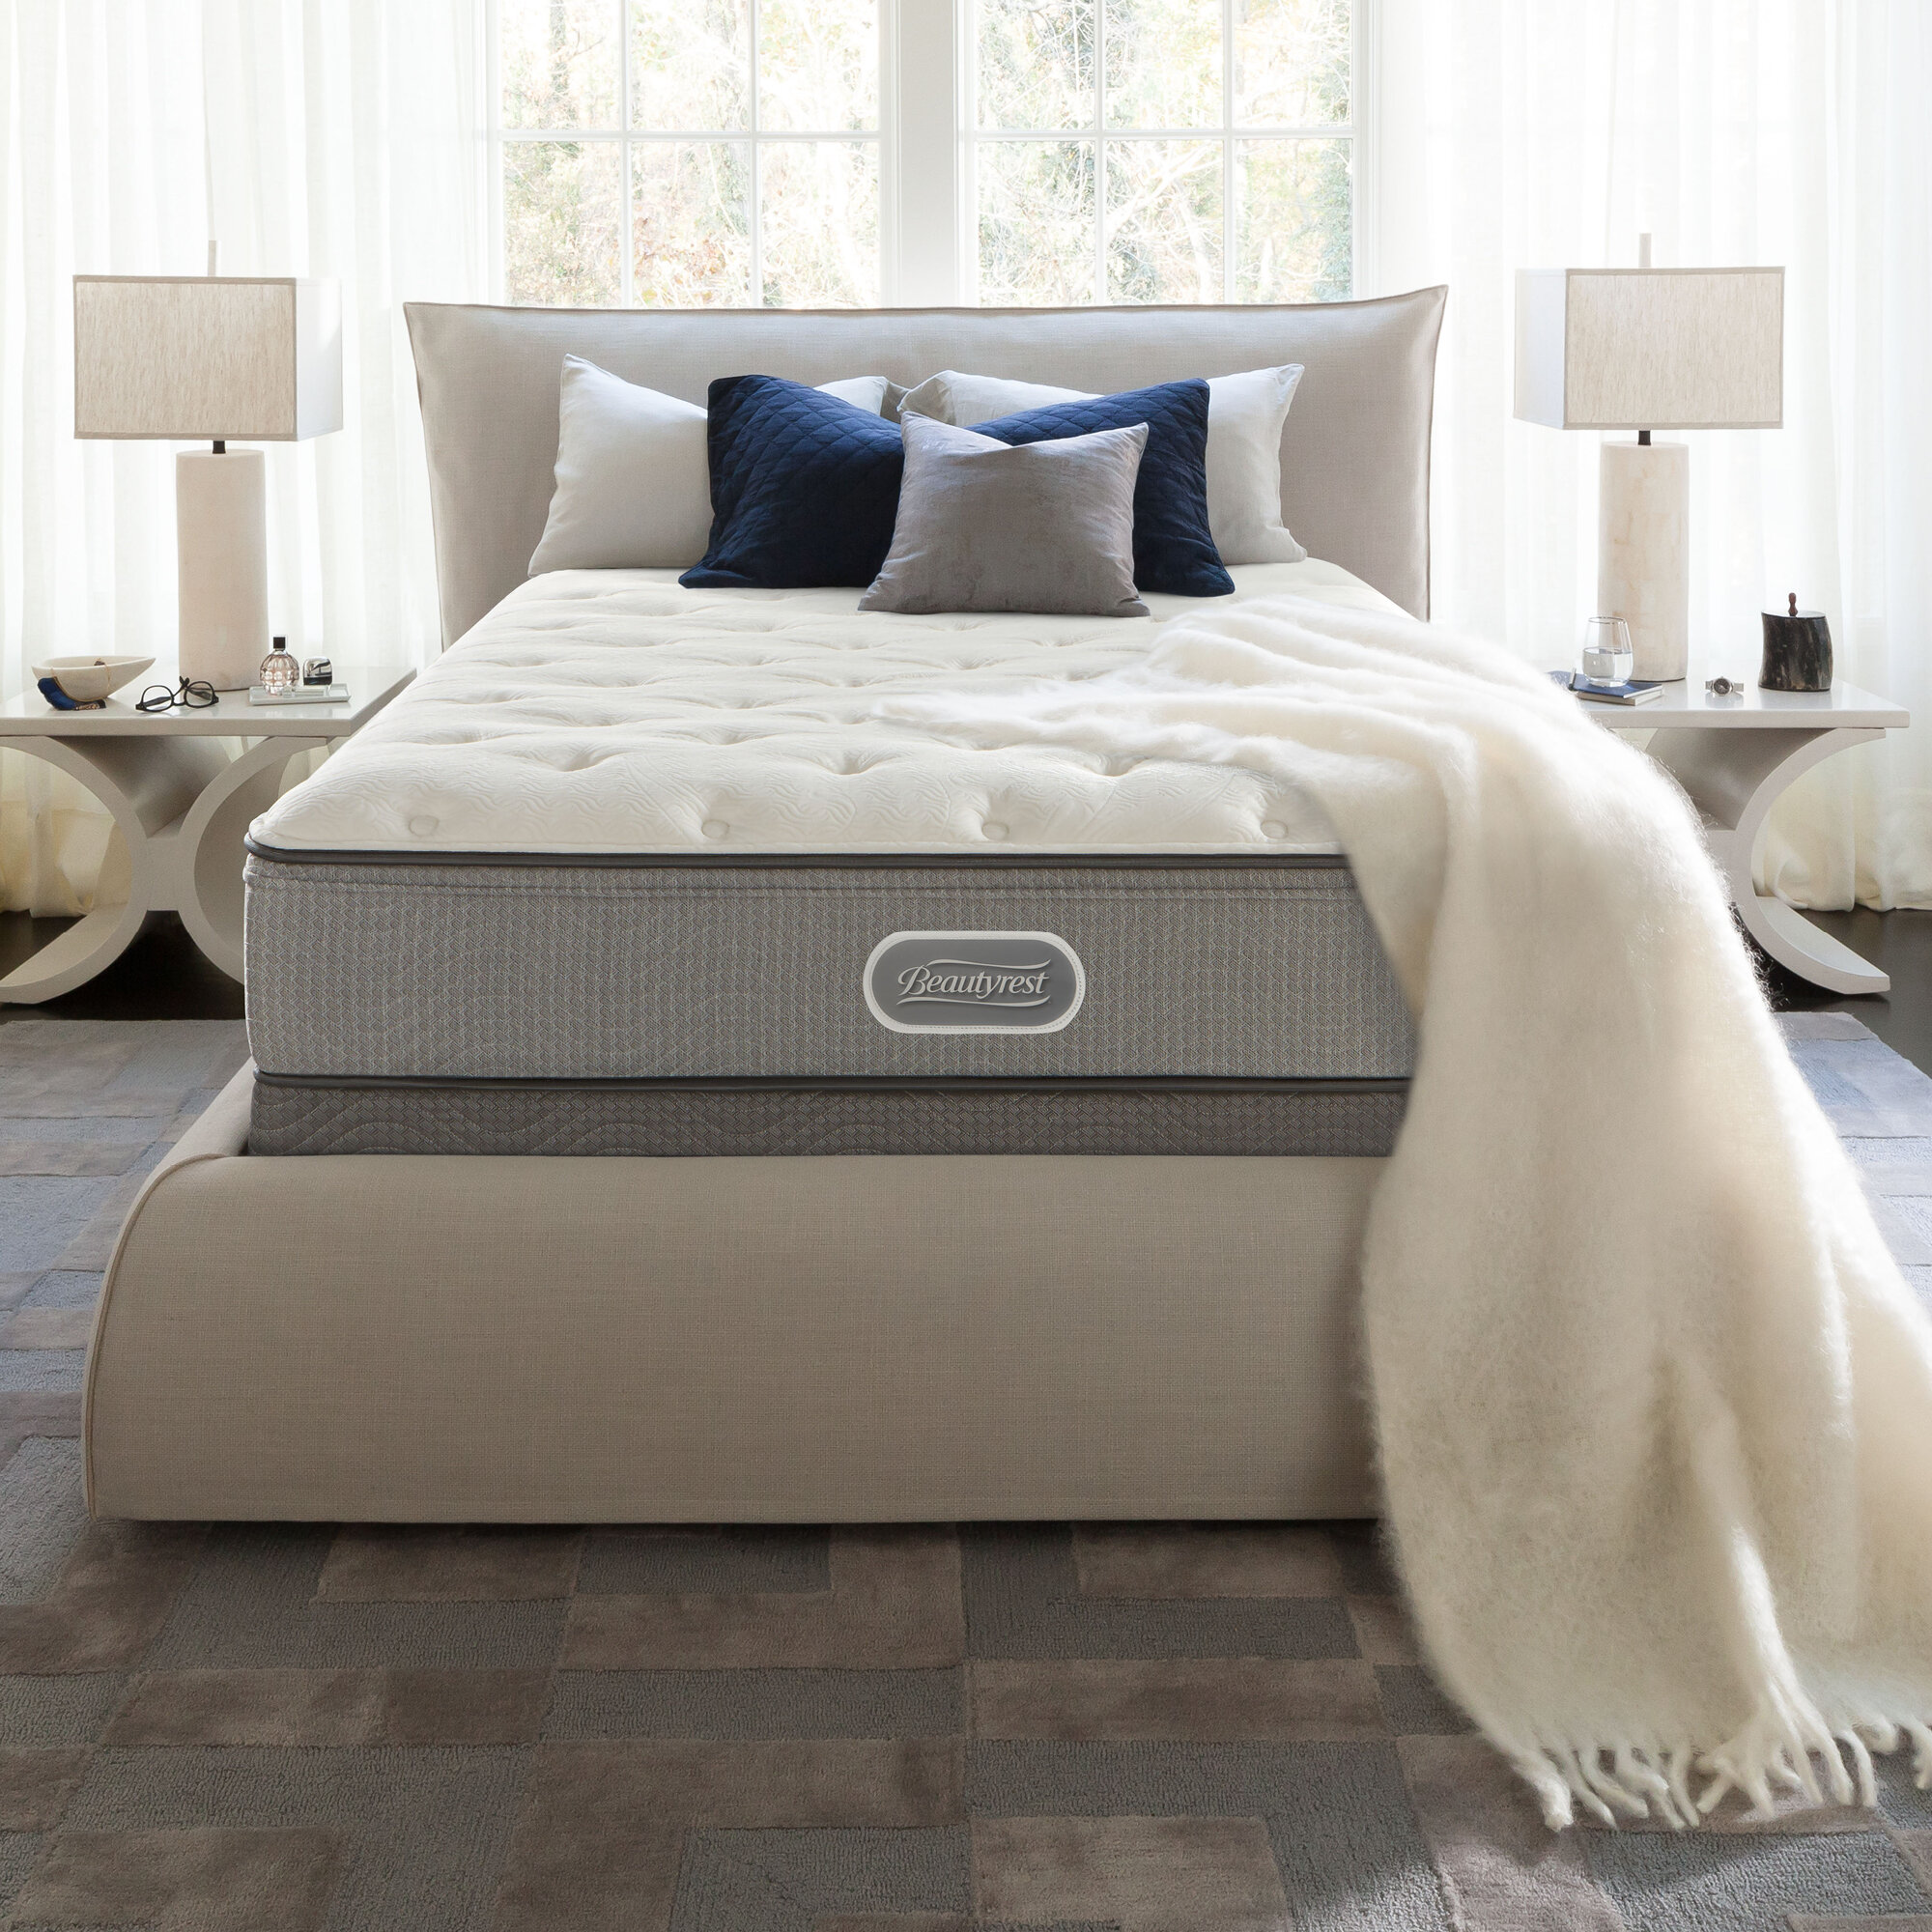 topper queen pillow top mattress sienna c